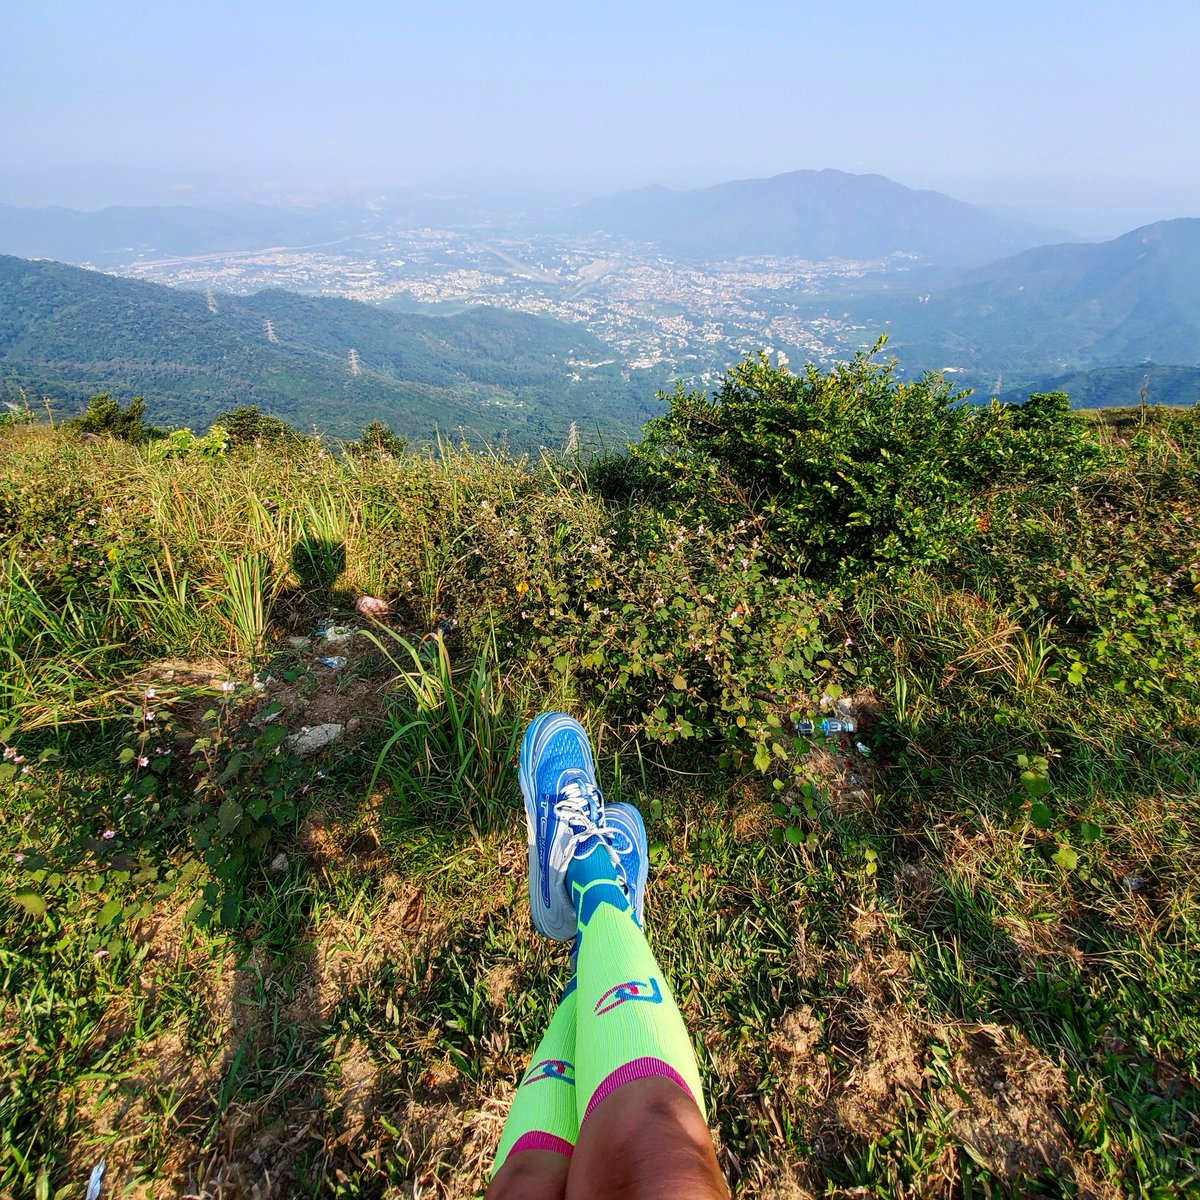 It's a beautiful day to do some hiking  at Tai Mo Shan which is the highest peak in Hong Kong with an elevation of 957m. @PROCompression #morningrun #procompressionambassador #sponsored #keepittight #taimoshan #大帽山 #hiking #hongkong #views<br>http://pic.twitter.com/kSyKVVHqPD